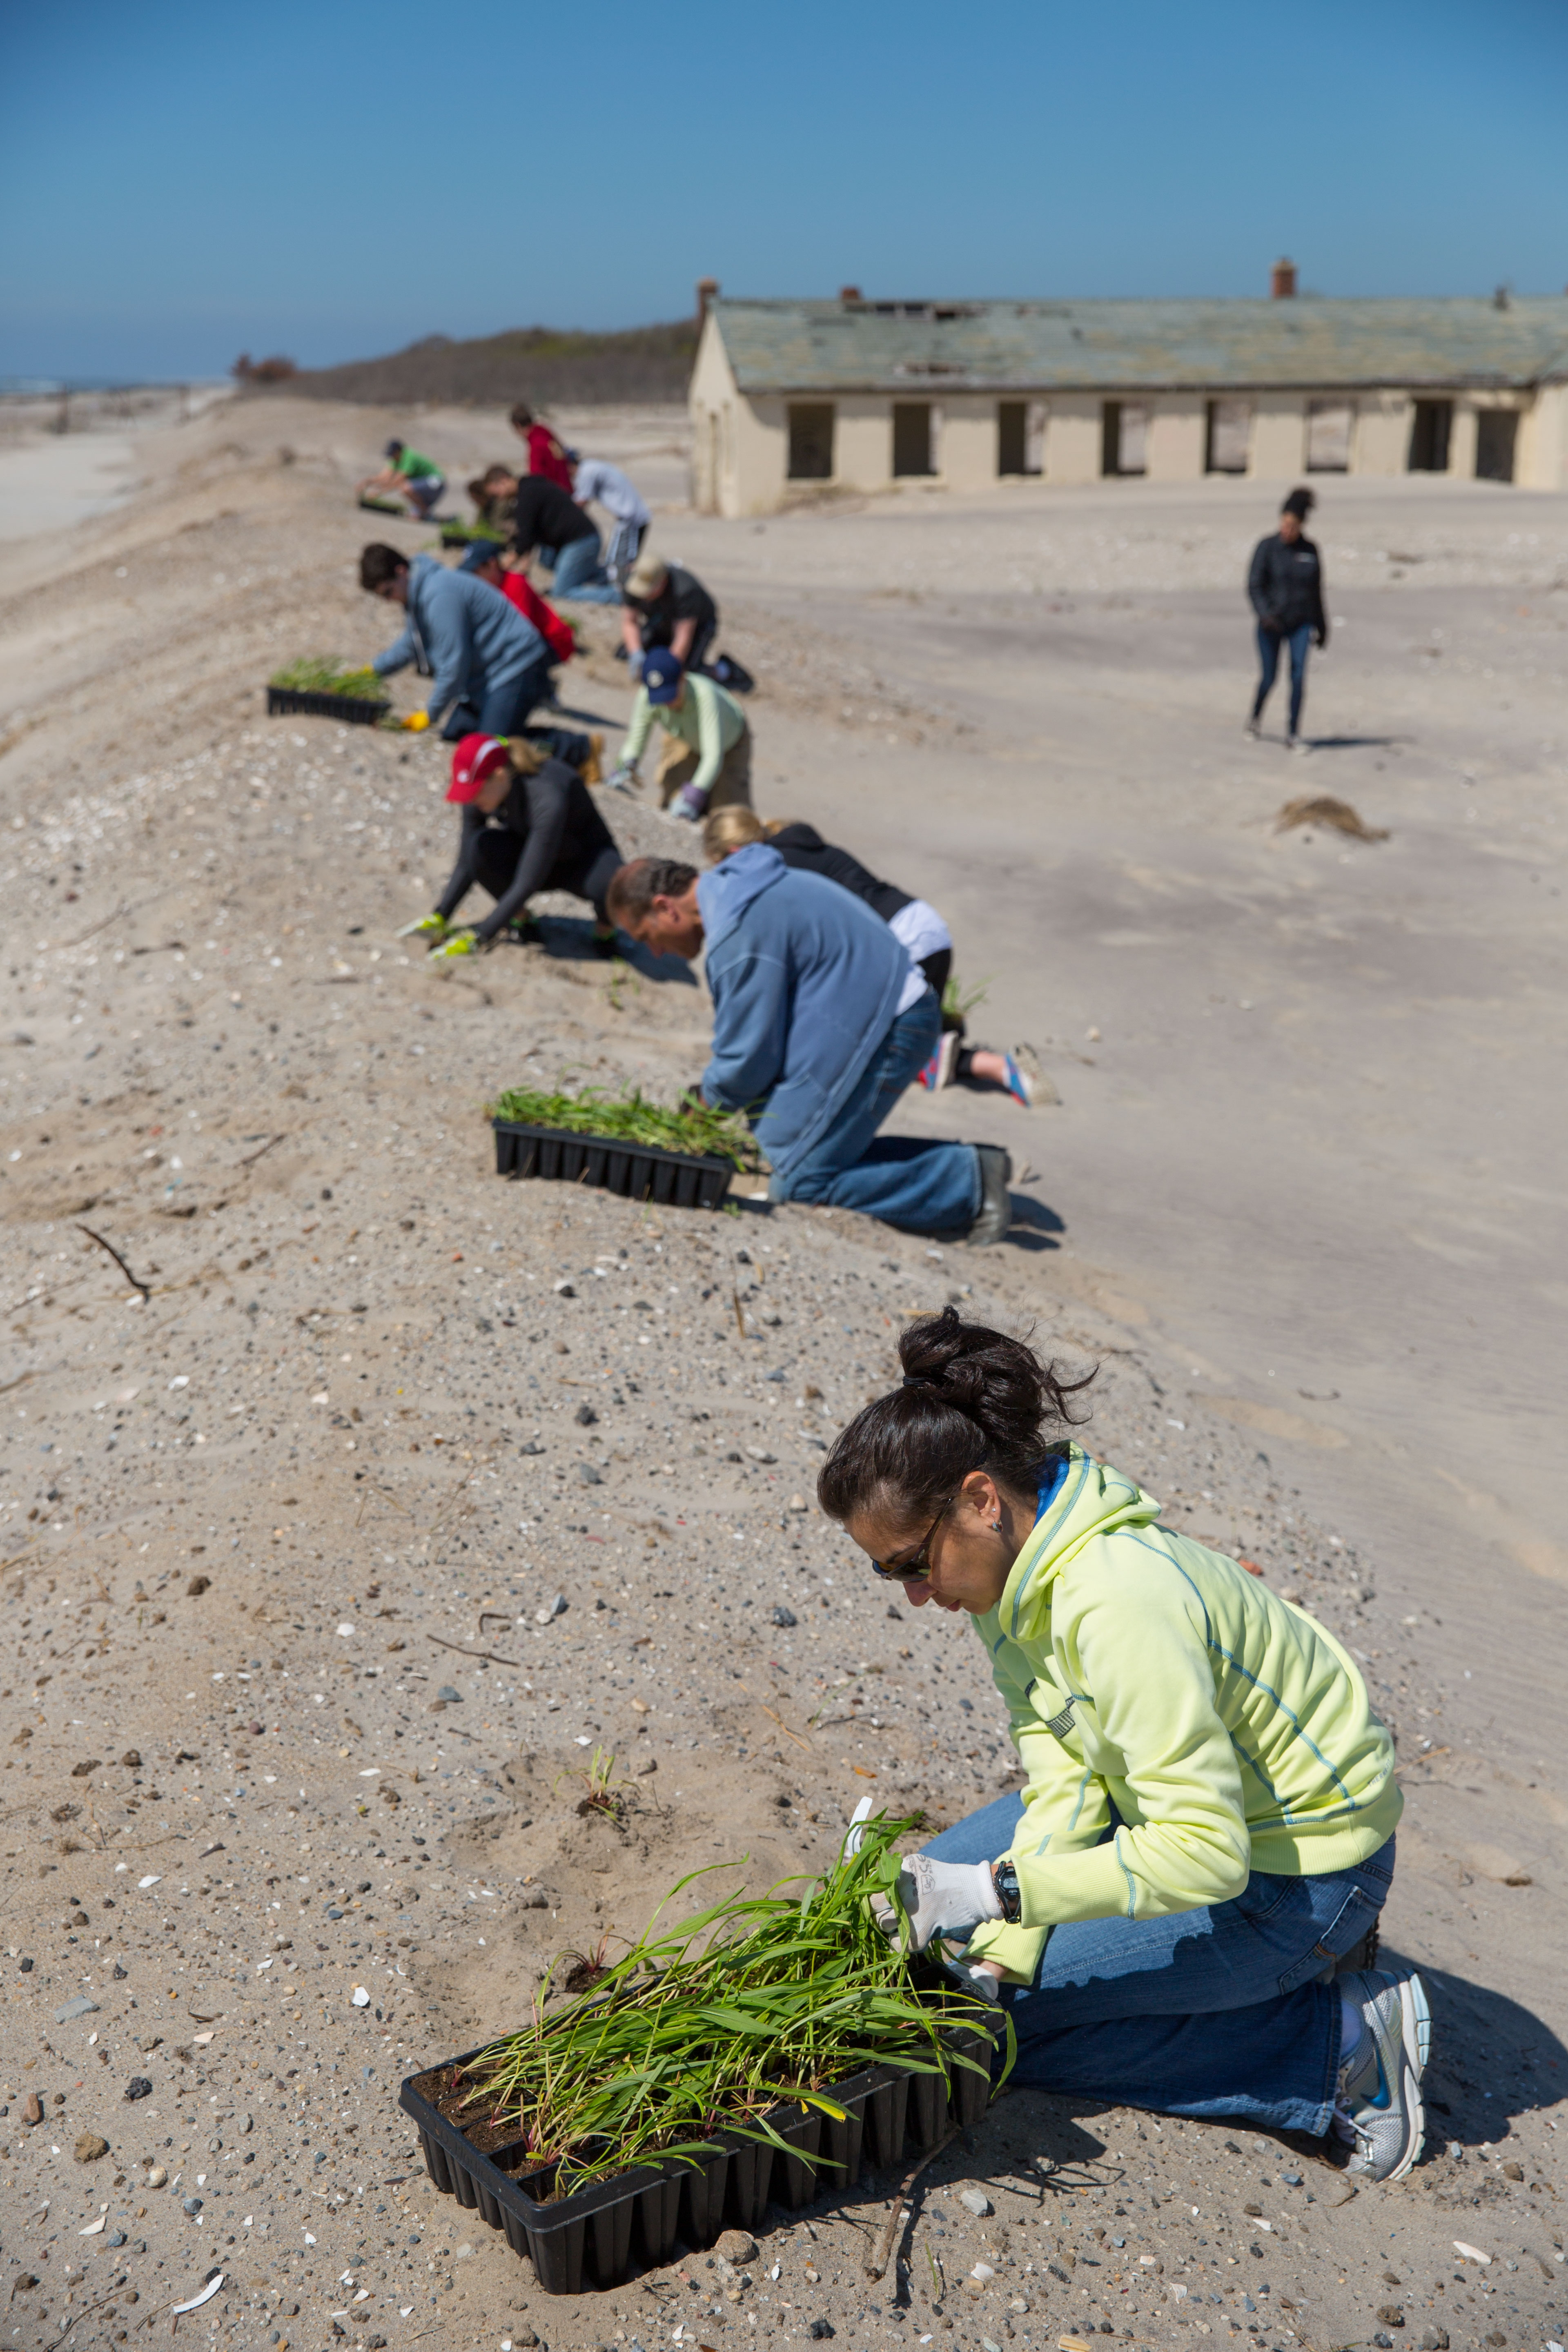 NWF volunteers spent the day planting native grasses to help rebuild dunes devastated by Hurricane Sandy